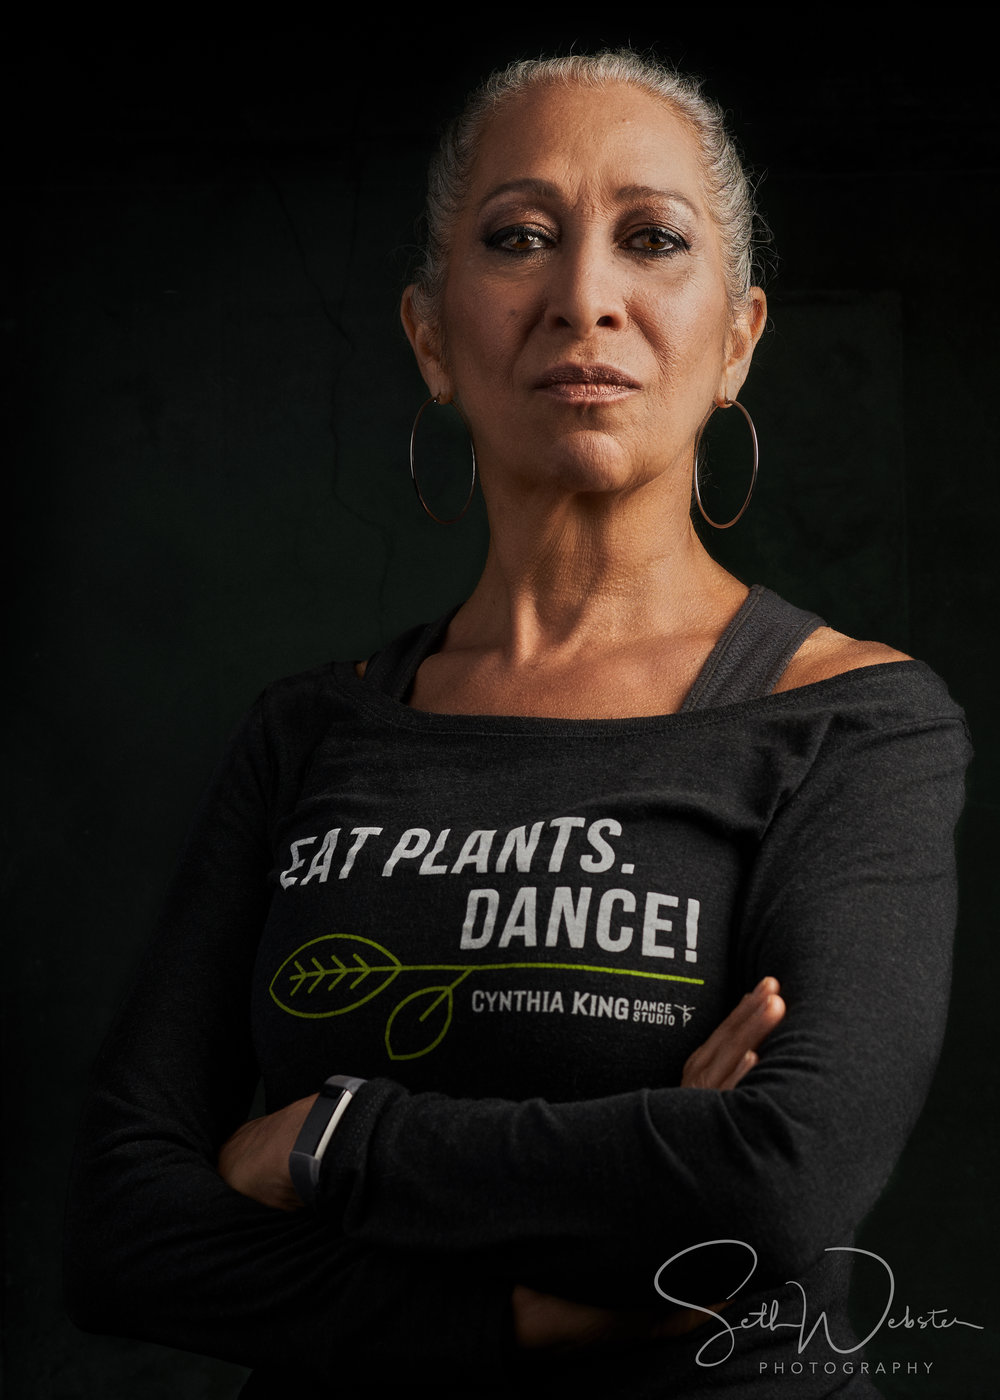 Cynthia King, Dance Teacher, Entrepreneur